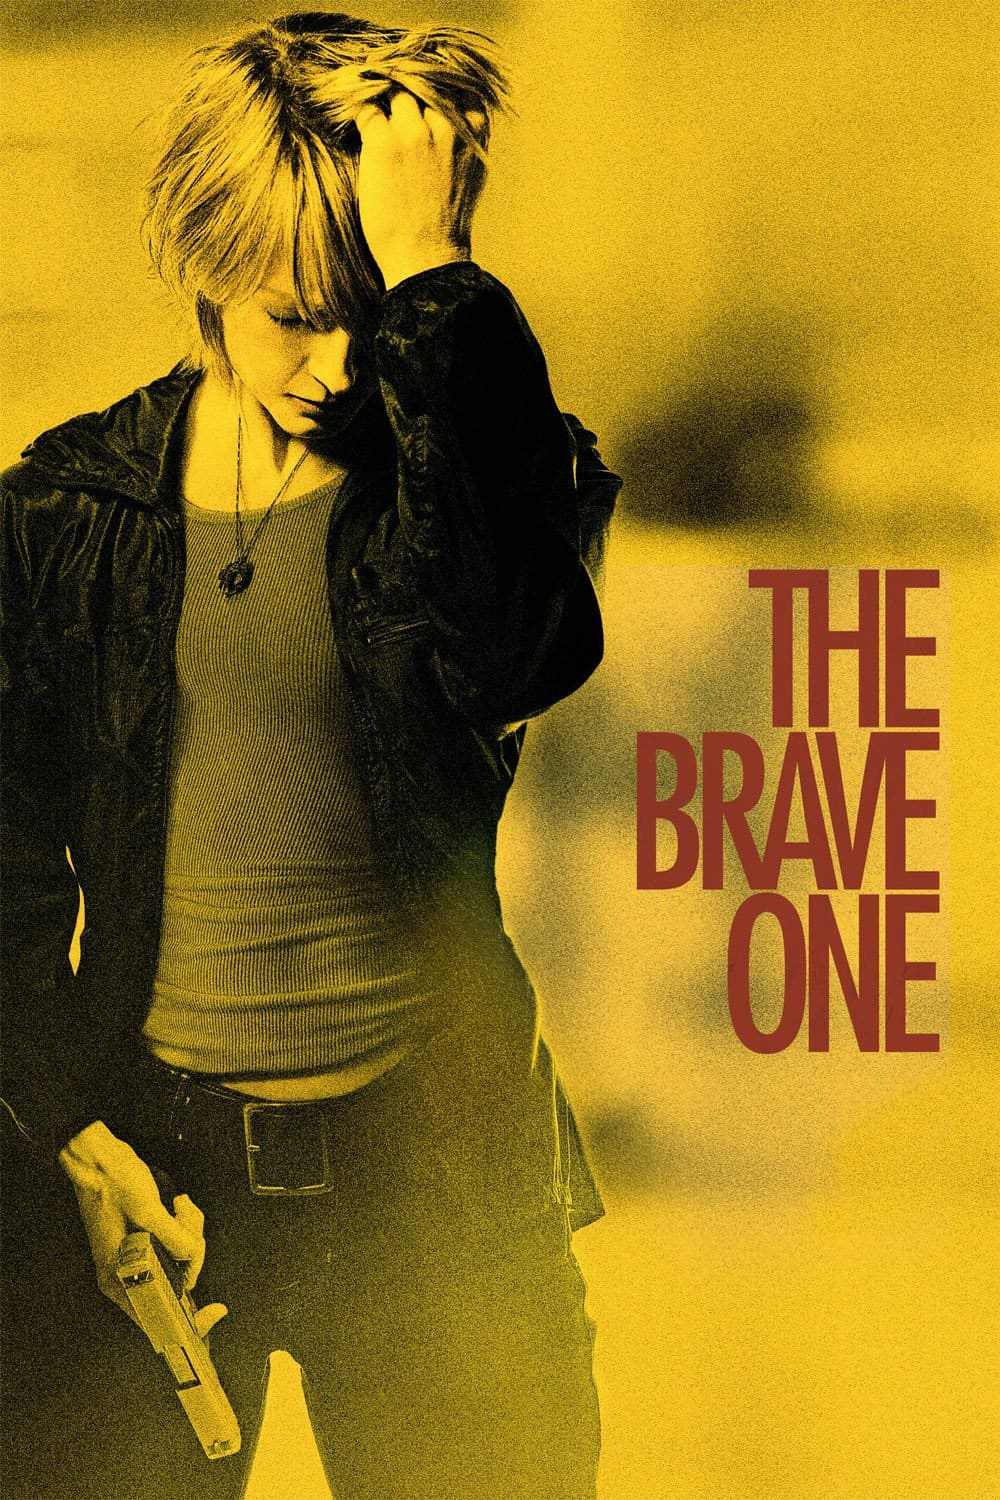 The Brave One, 2007